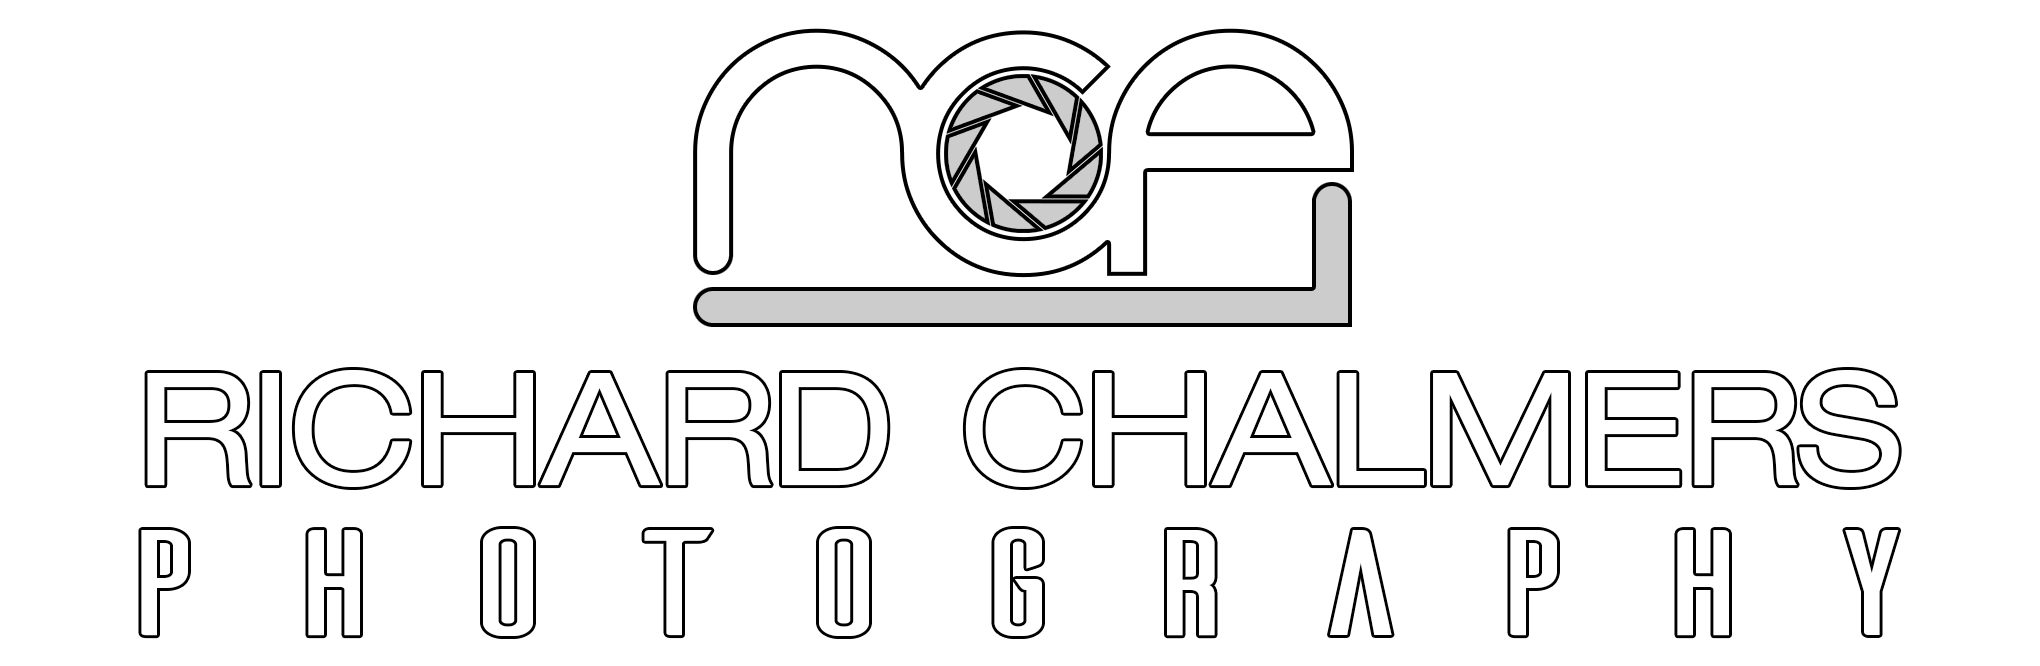 Richard Chalmers Photography Logo